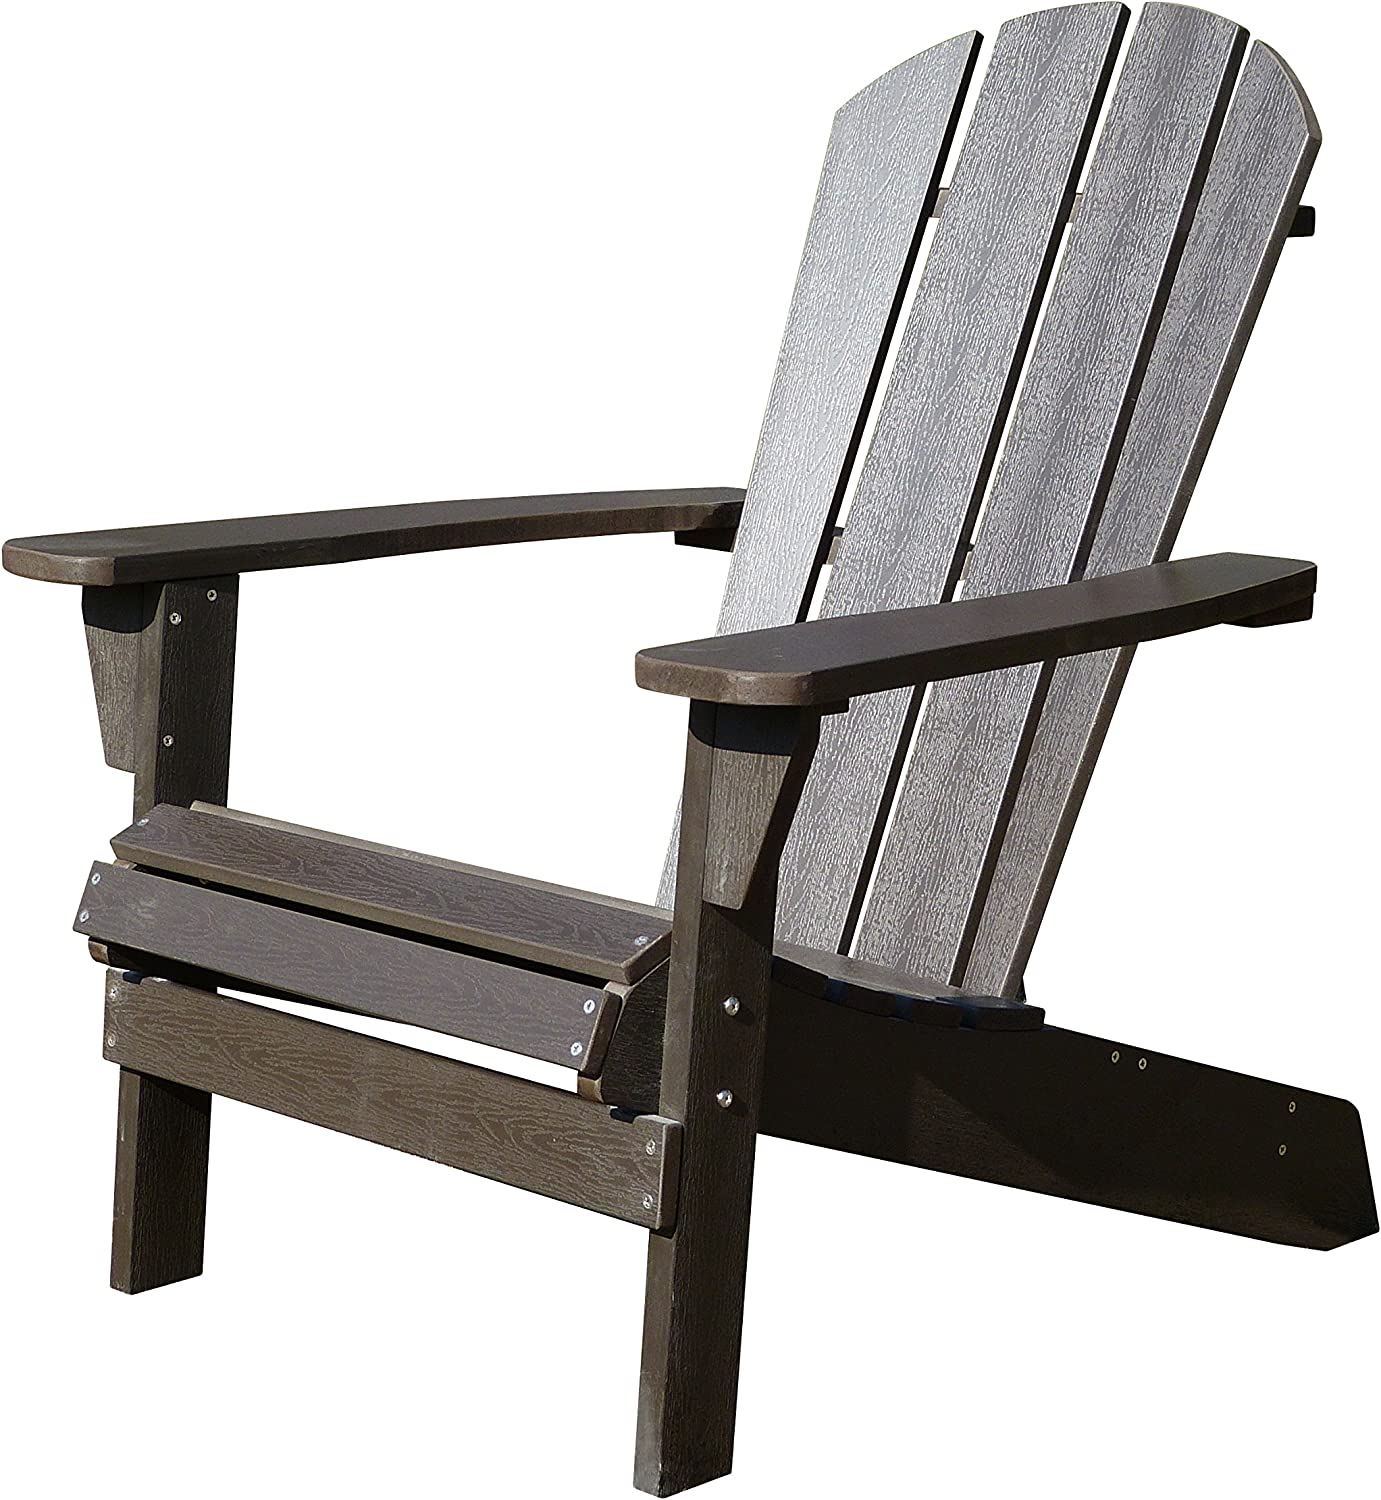 Northbeam Faux Wood Foldable Relaxed Adirondack Chair, Outdoor, Garden, Lawn, Deck Chair, Espresso : Garden & Outdoor